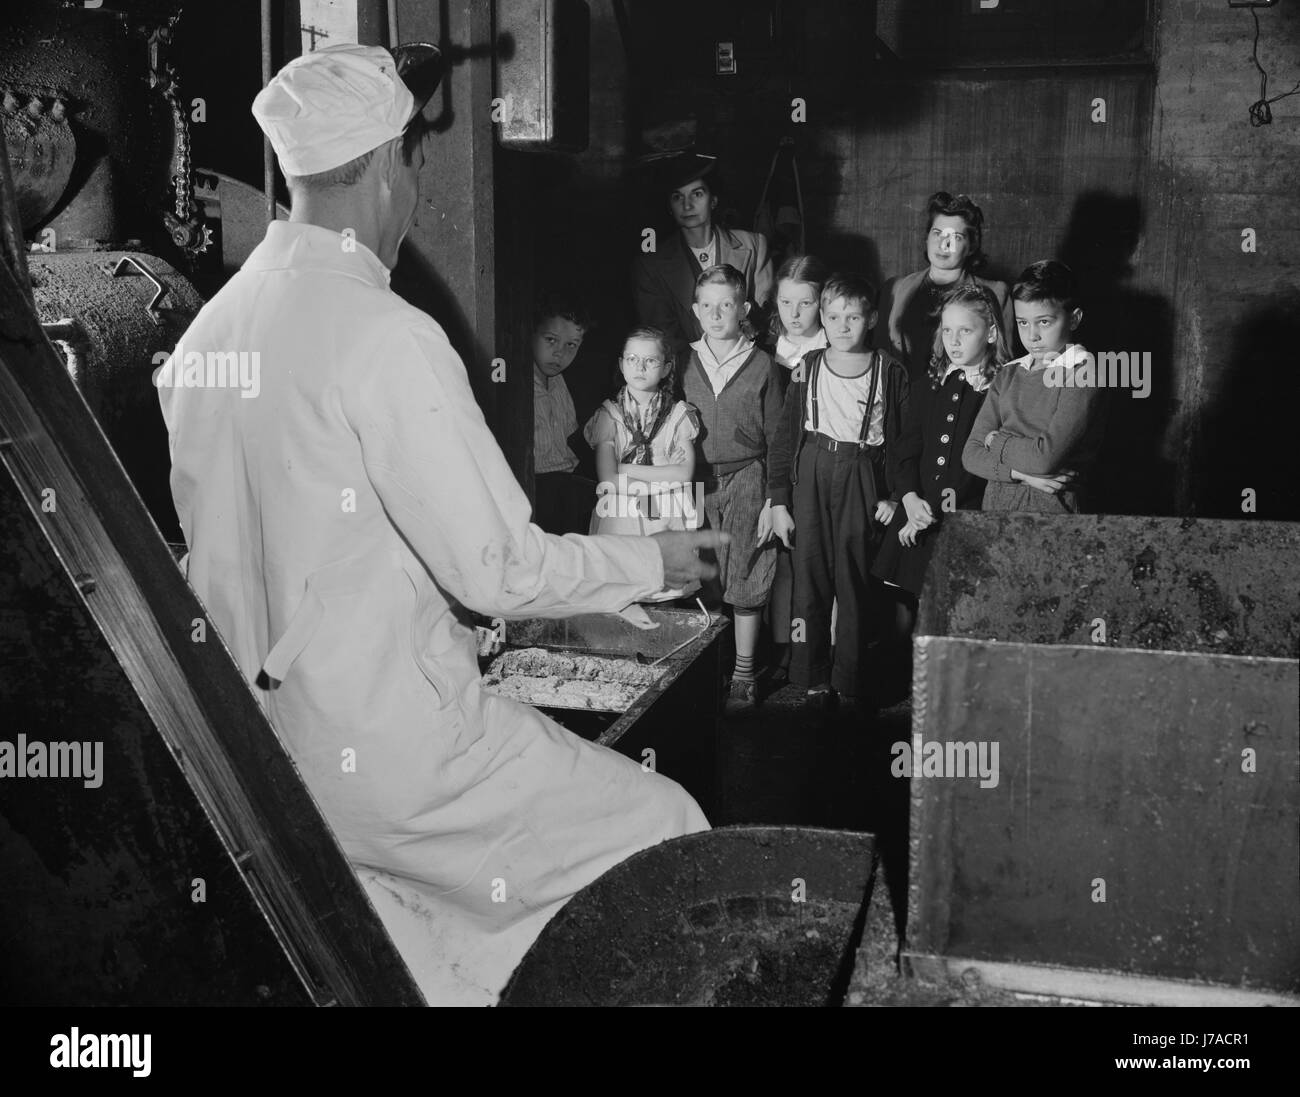 Children visit the local rendering plant to learn how explosives are made from fats and grease, 1942. - Stock Image